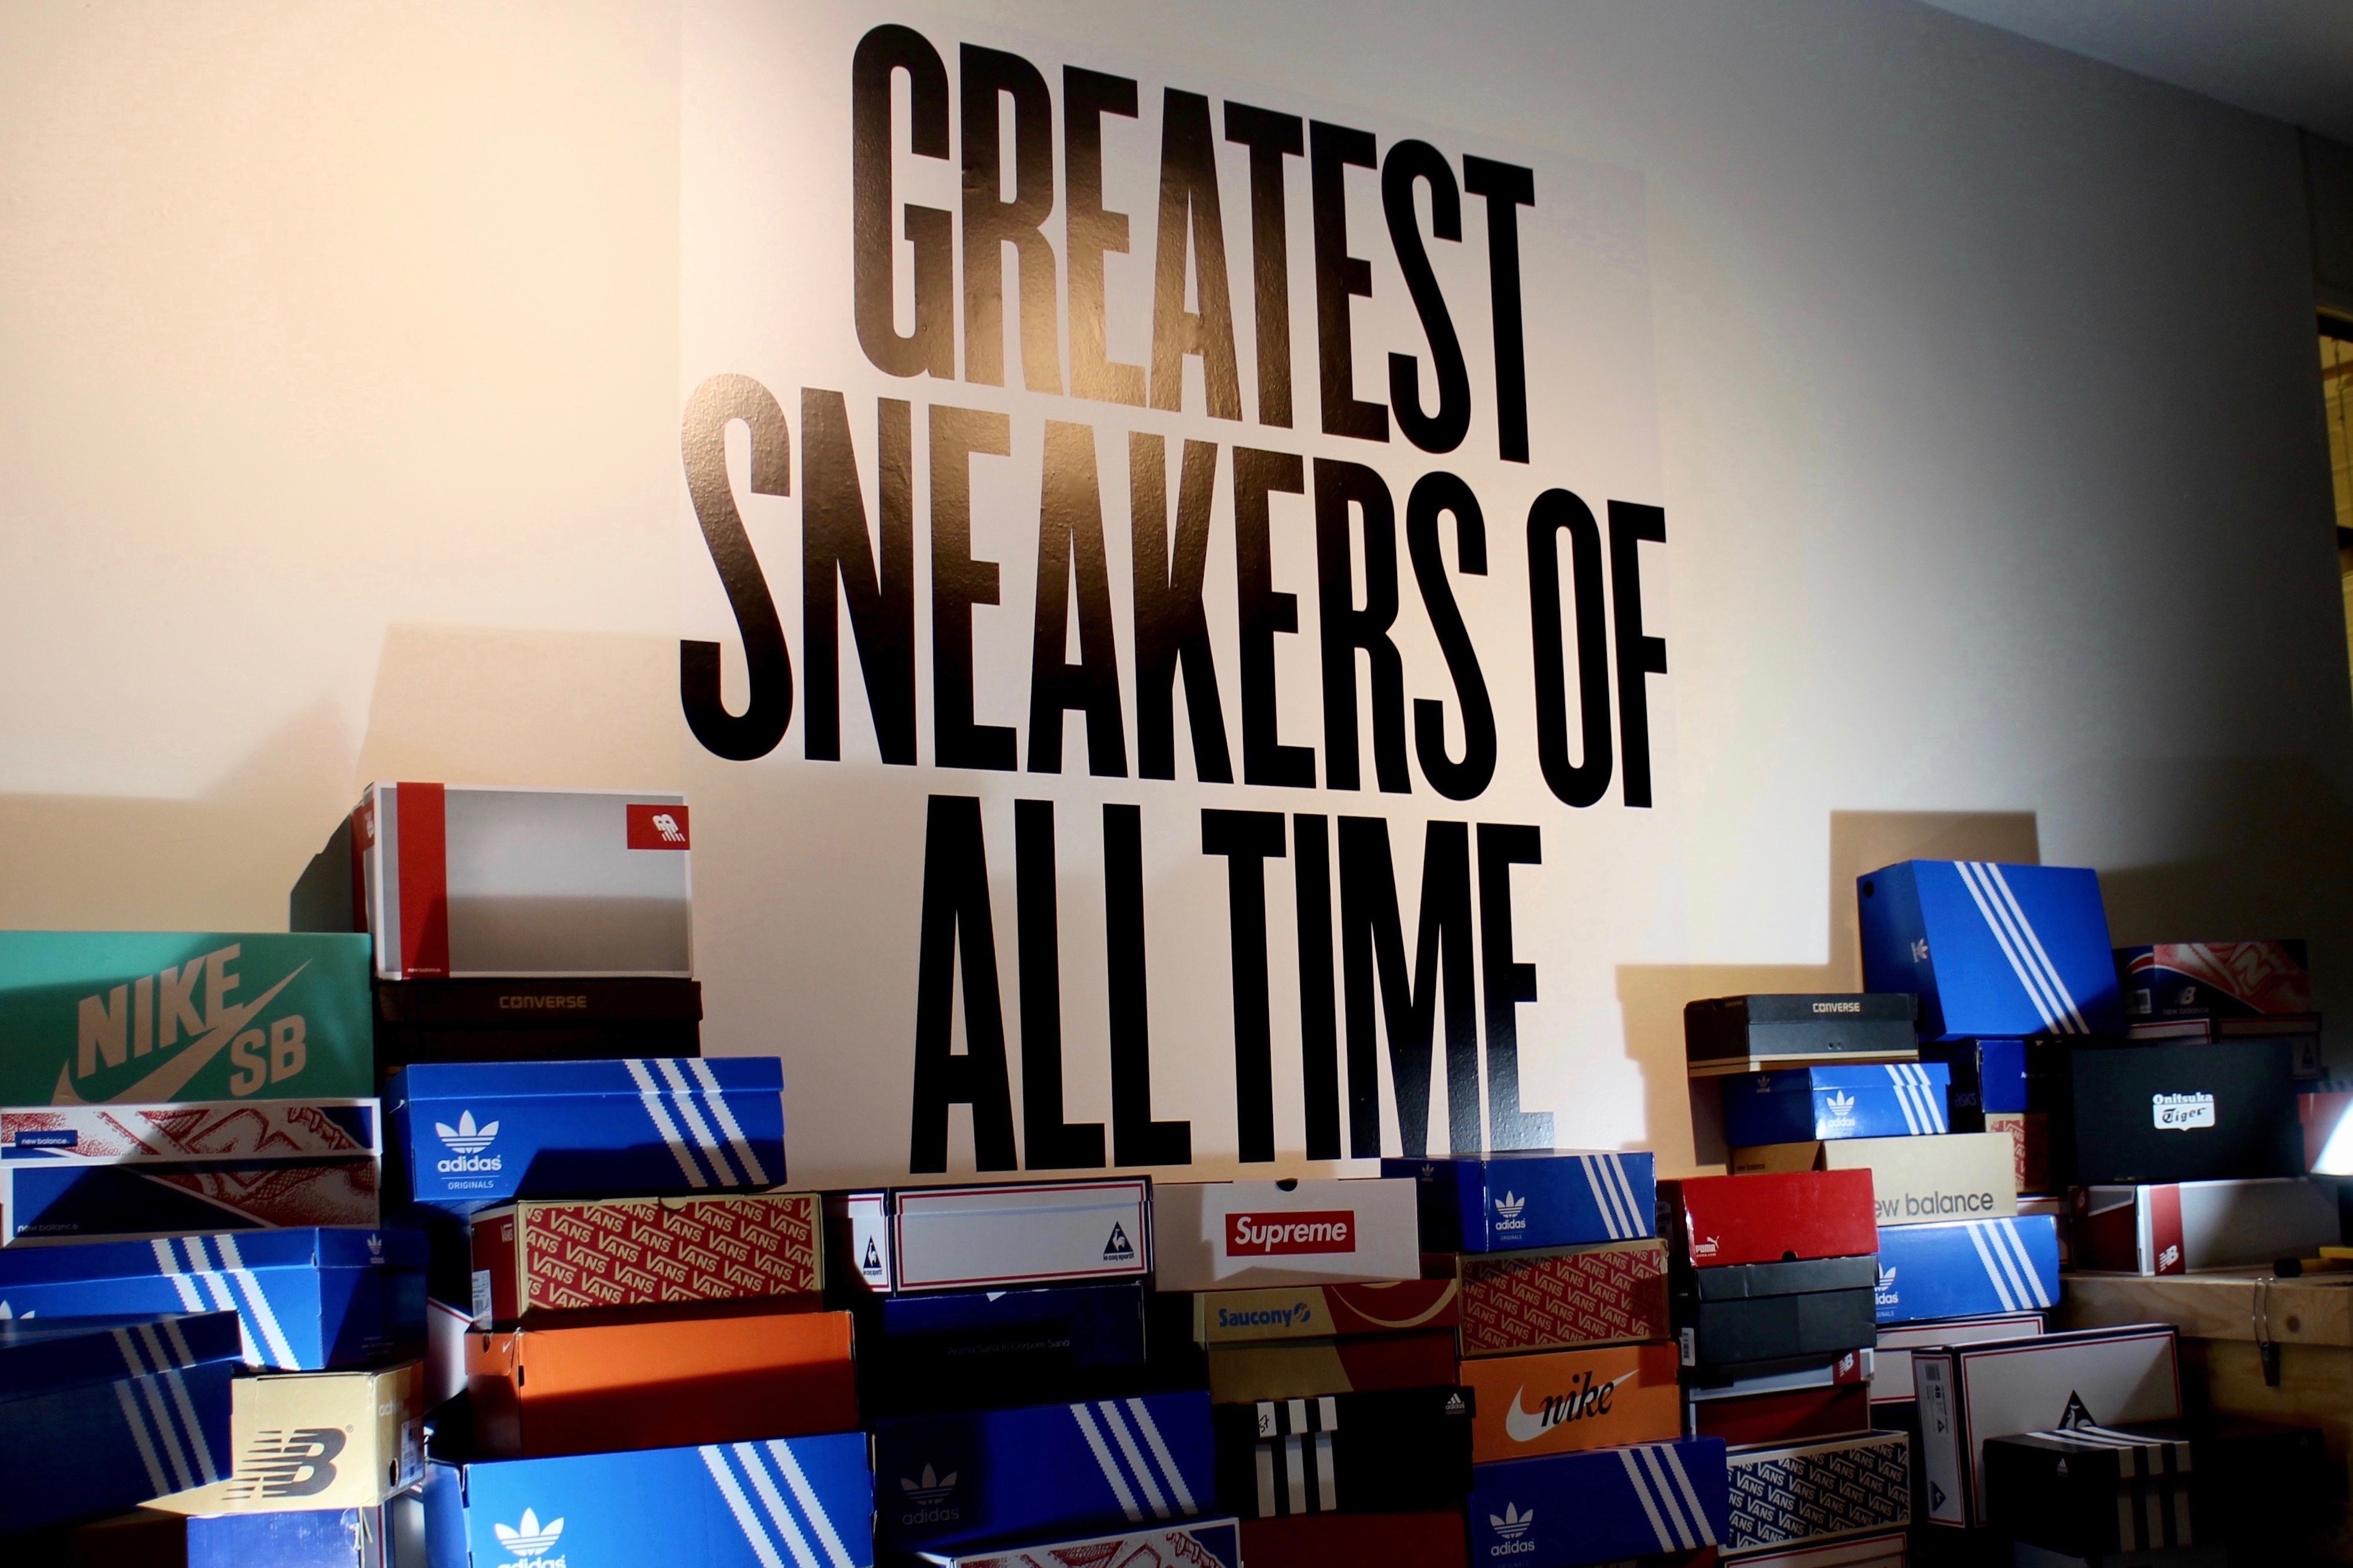 Greatest Sneakers Of All Time Exhibition - Event Opening Recap - OG EUKicks  Sneaker Magazine 0fad13c55